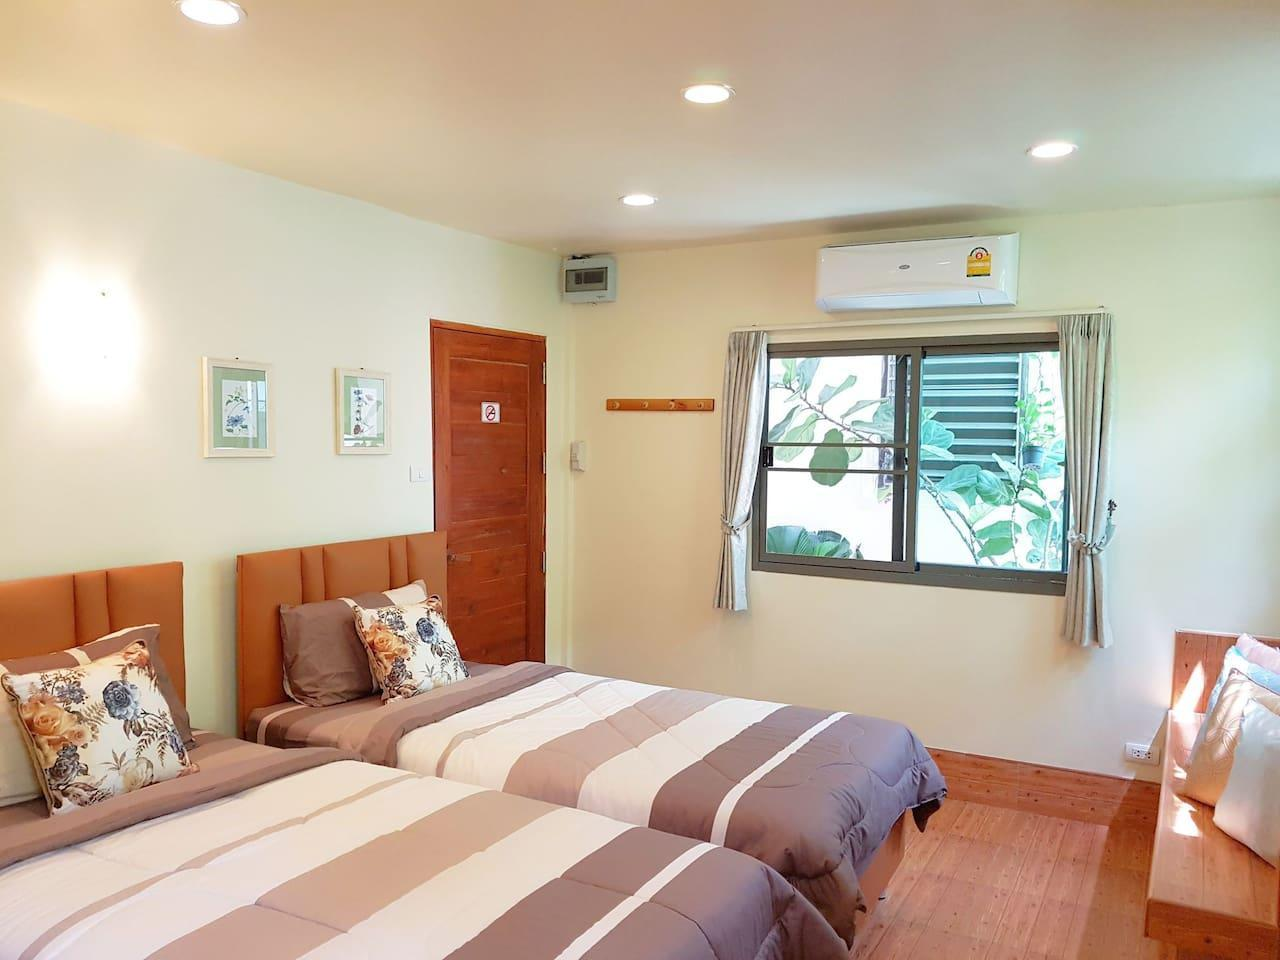 Nature Twin Bed Room 10 Mins To DMK Airport